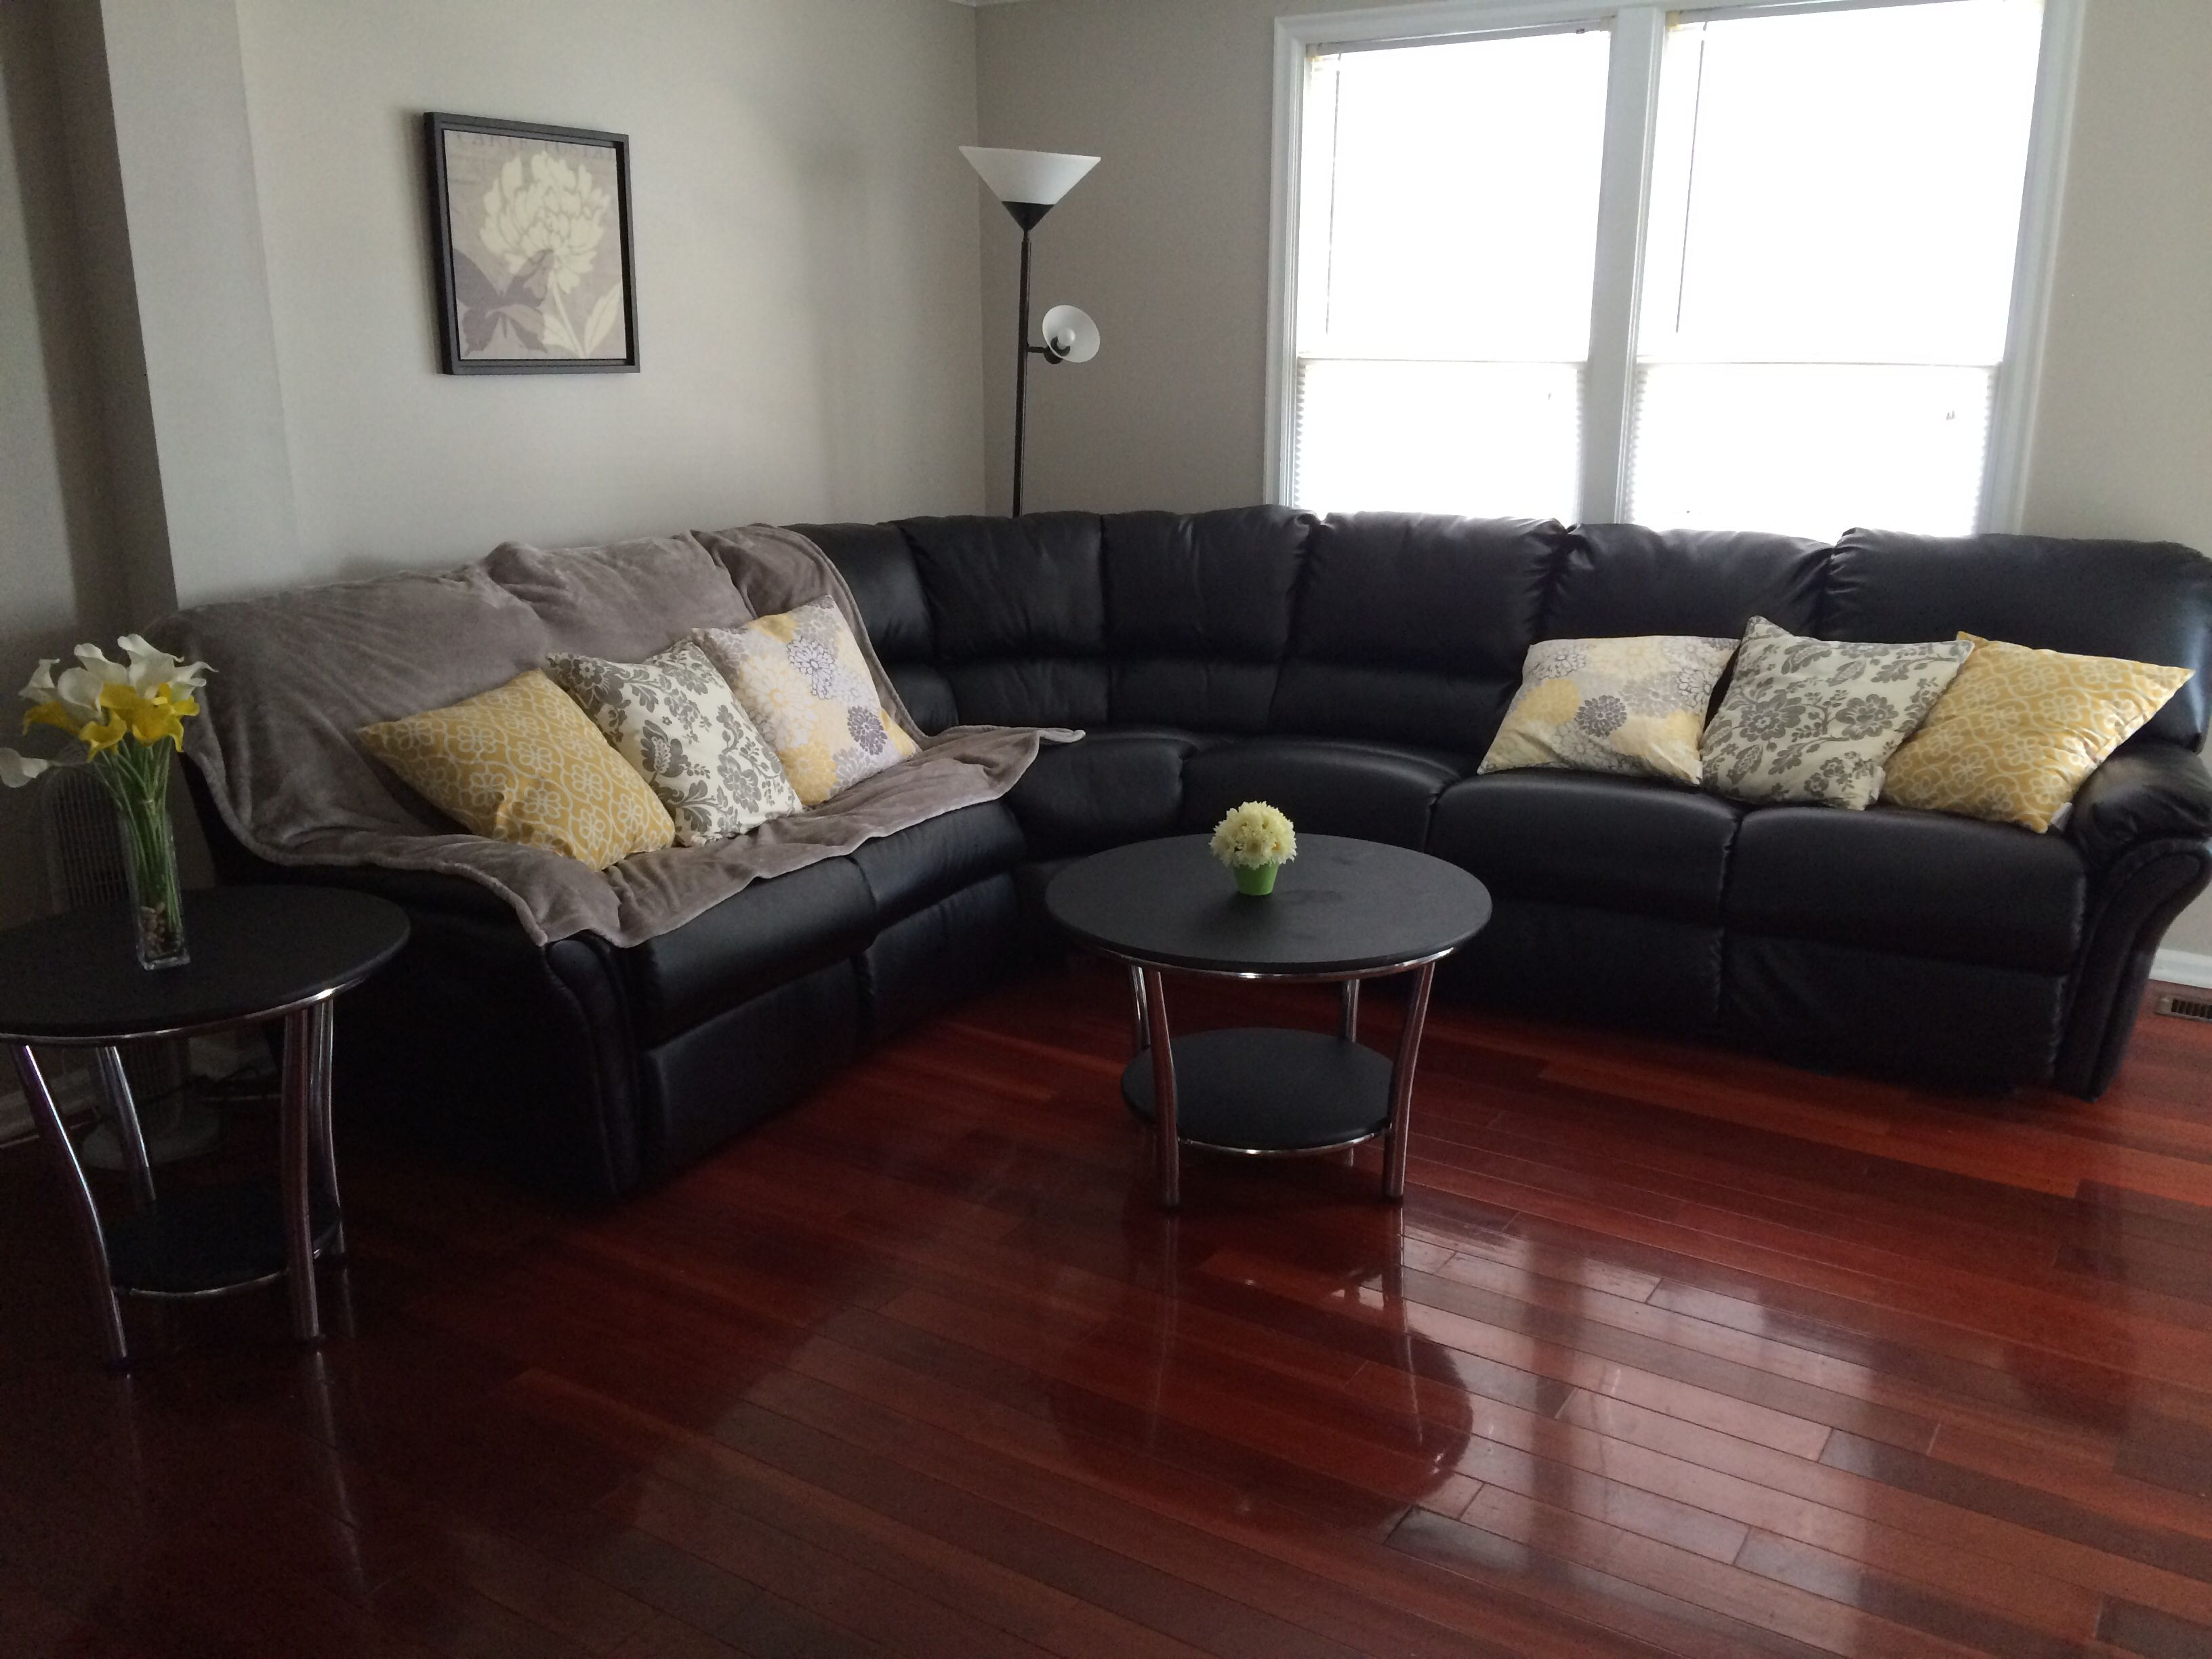 Living Room Ideas With Cherry Wood Floors Modern Sofa For Small Black Sectional Couch Yellow Throw Pillows And Hardwood